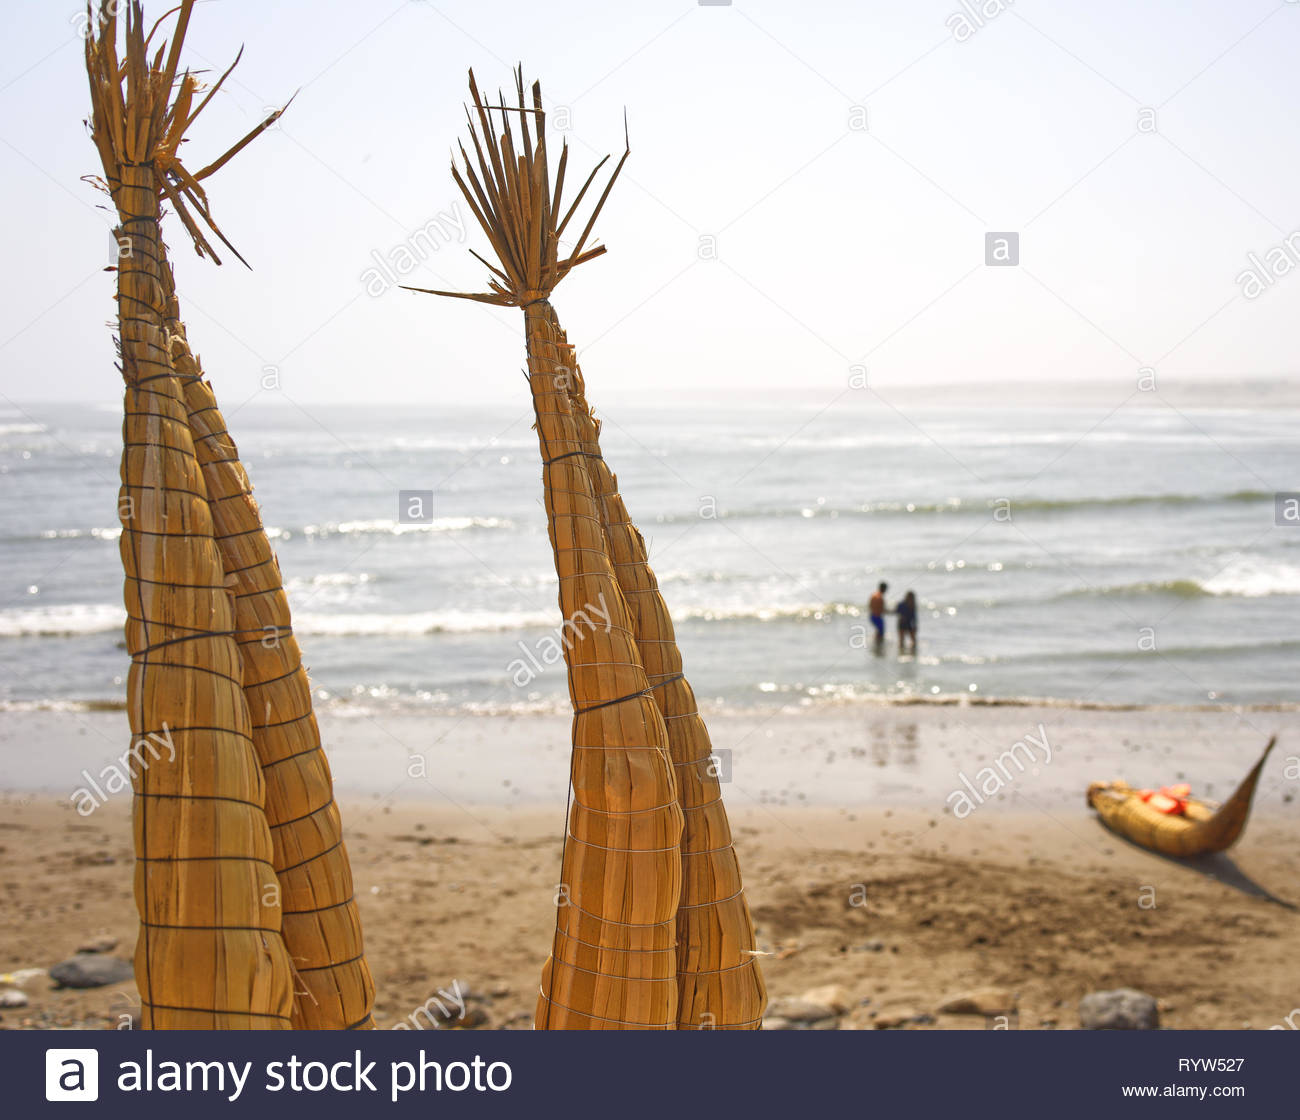 Reed boat Caballito de Totora on the beach in Huanchaco Trujillo Peru with a couple in the background. Out swimming - Stock Image